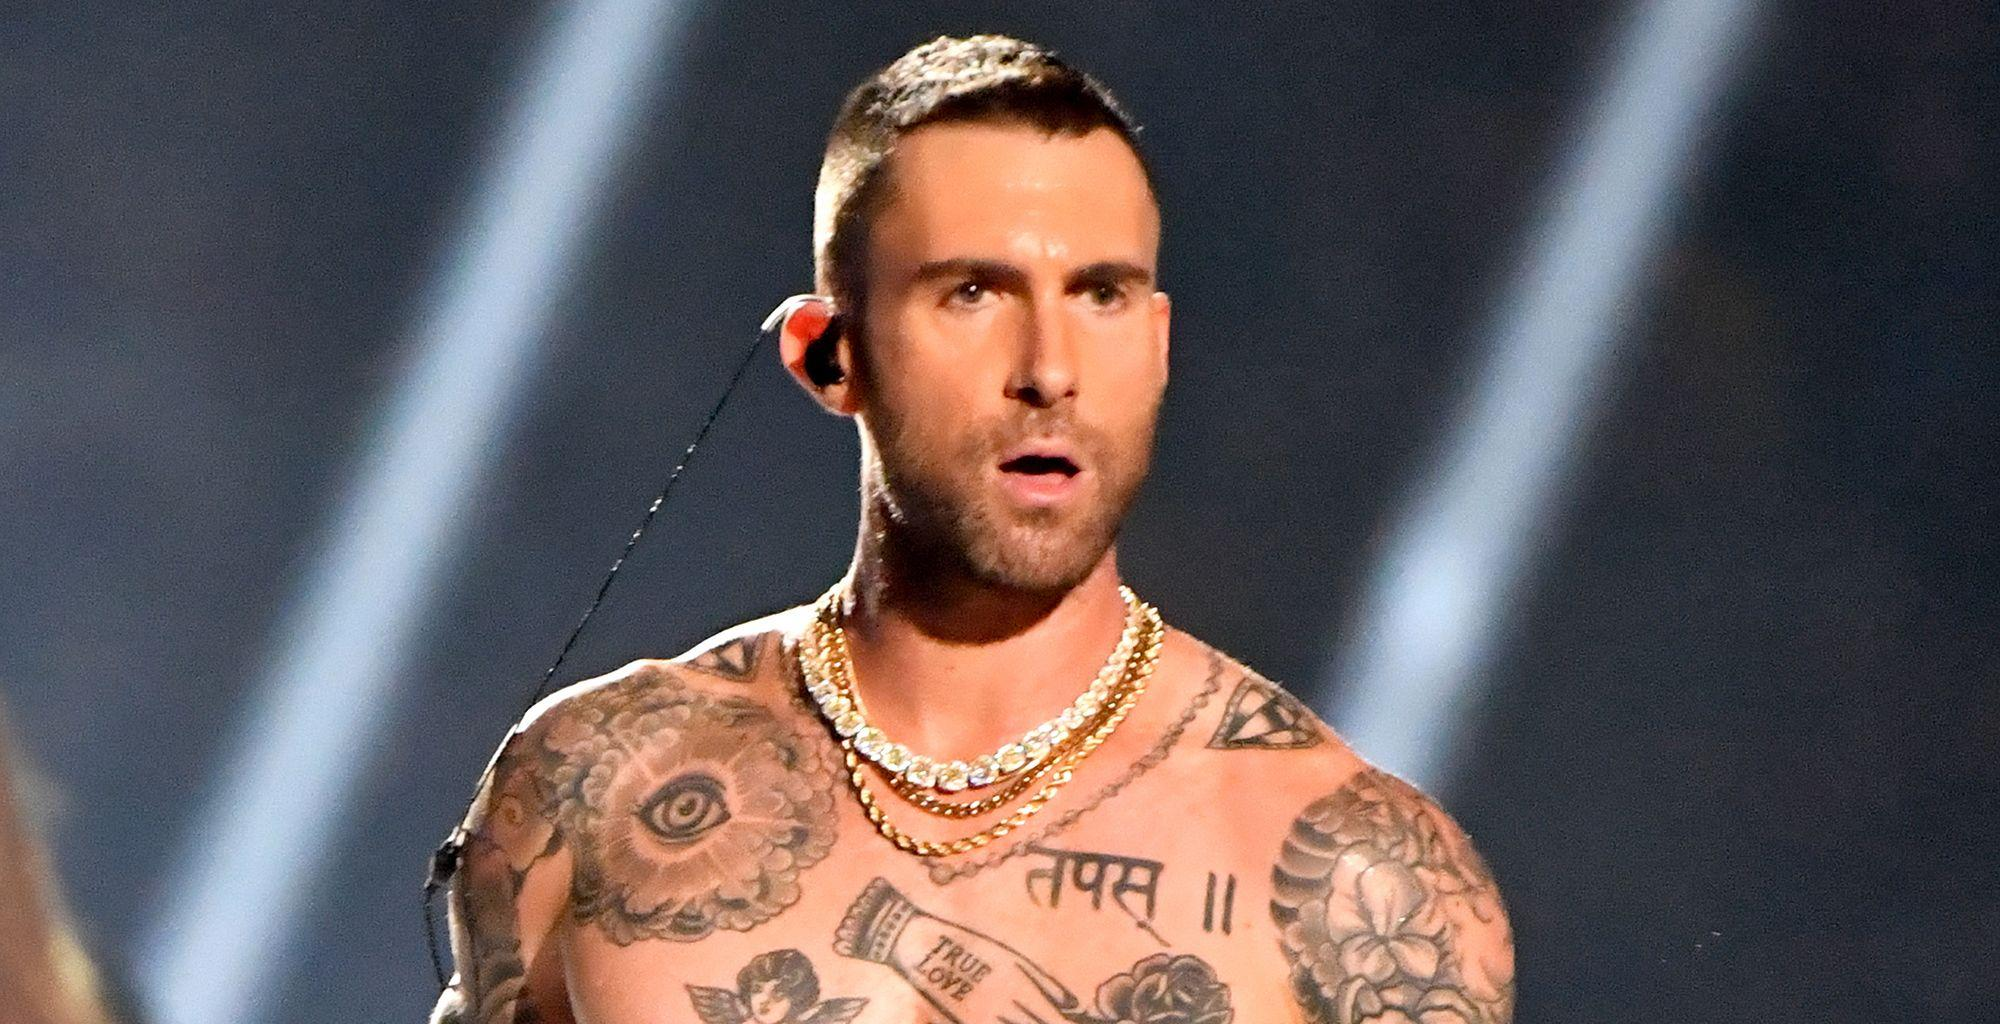 Adam Levine Slammed For Being 'Hypocritical' After Posting About Racial Inequality And BLM Despite Taking Super Bowl Gig!